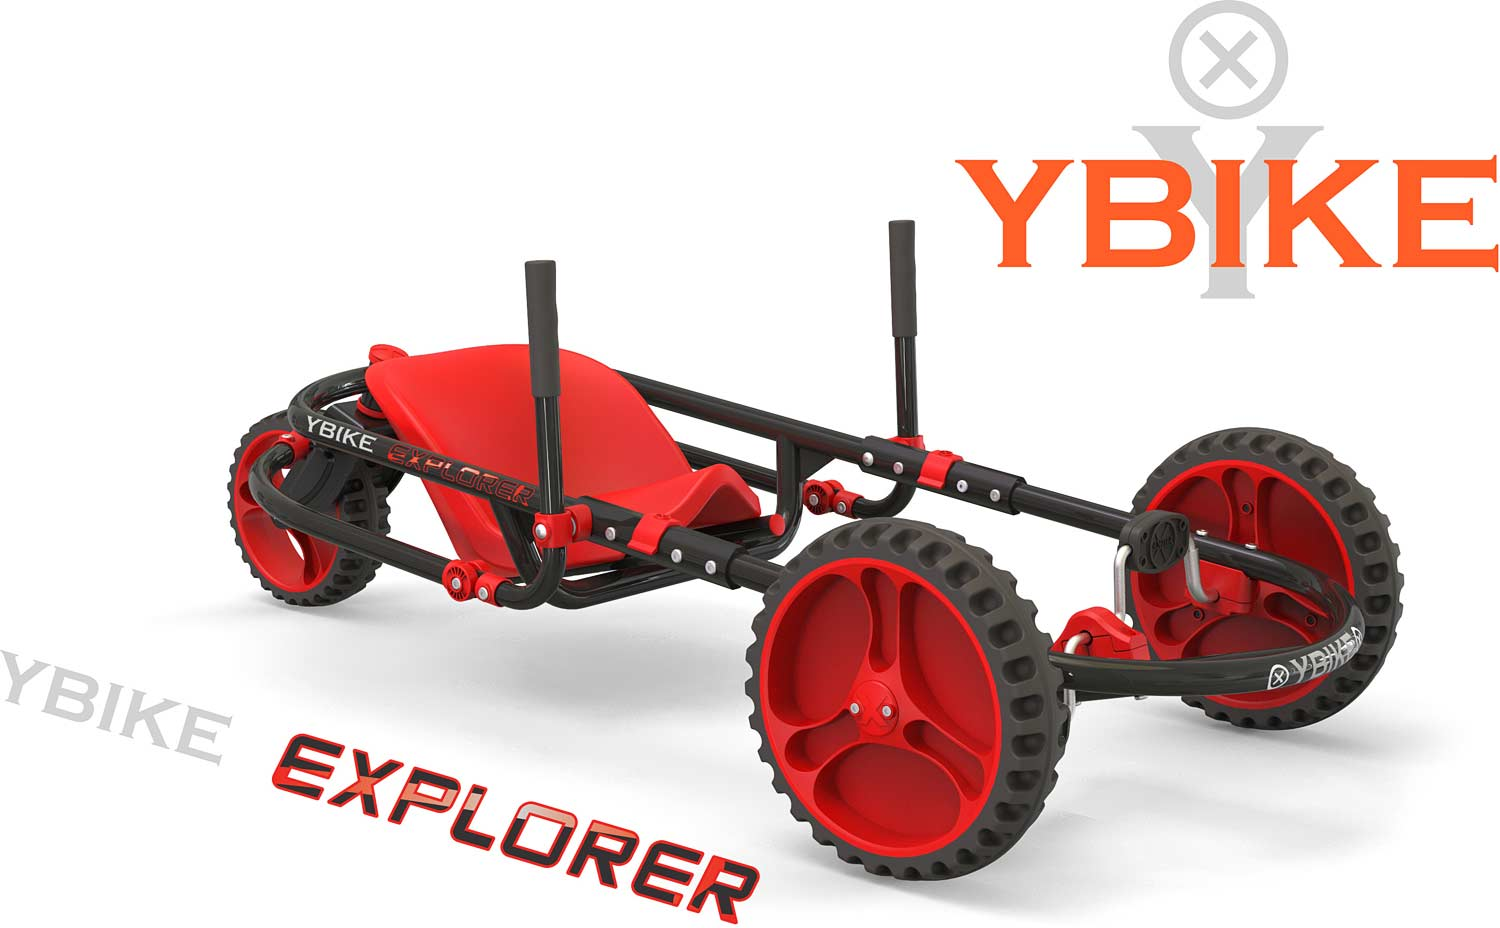 YBIKE Explorer 3.0 - Red/Black